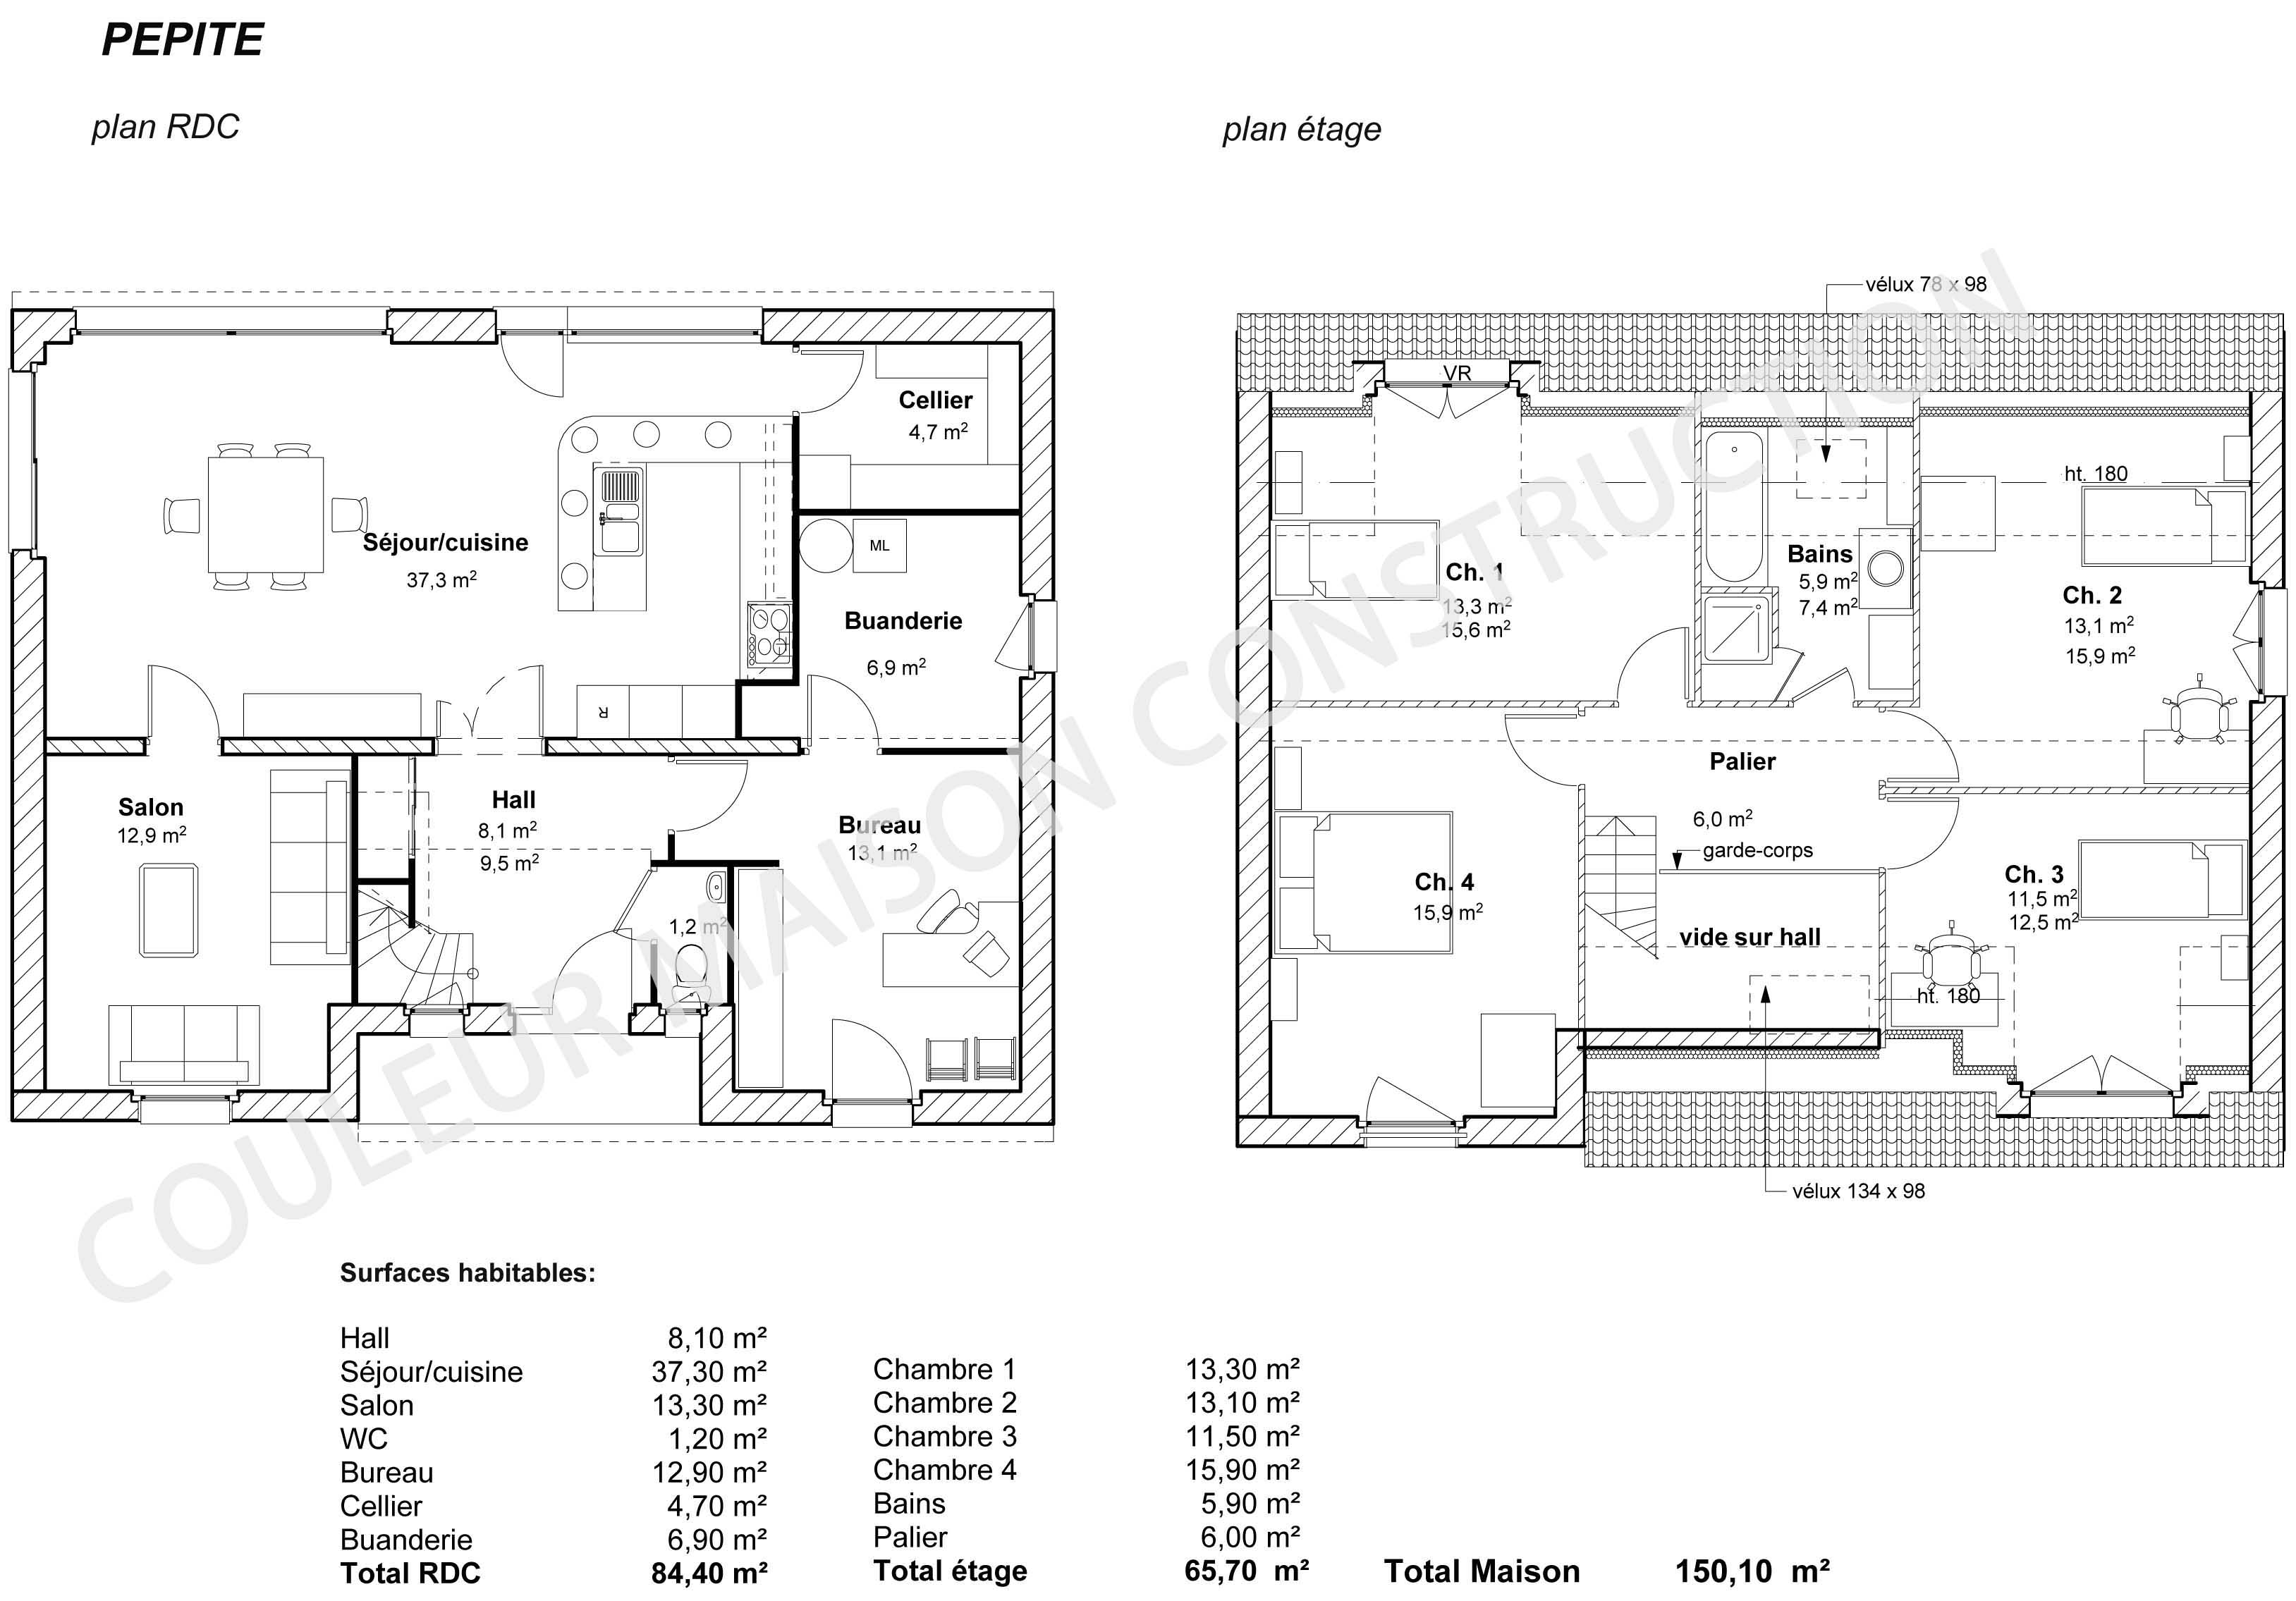 Plan maison gratuit pdf images for Plans de maison